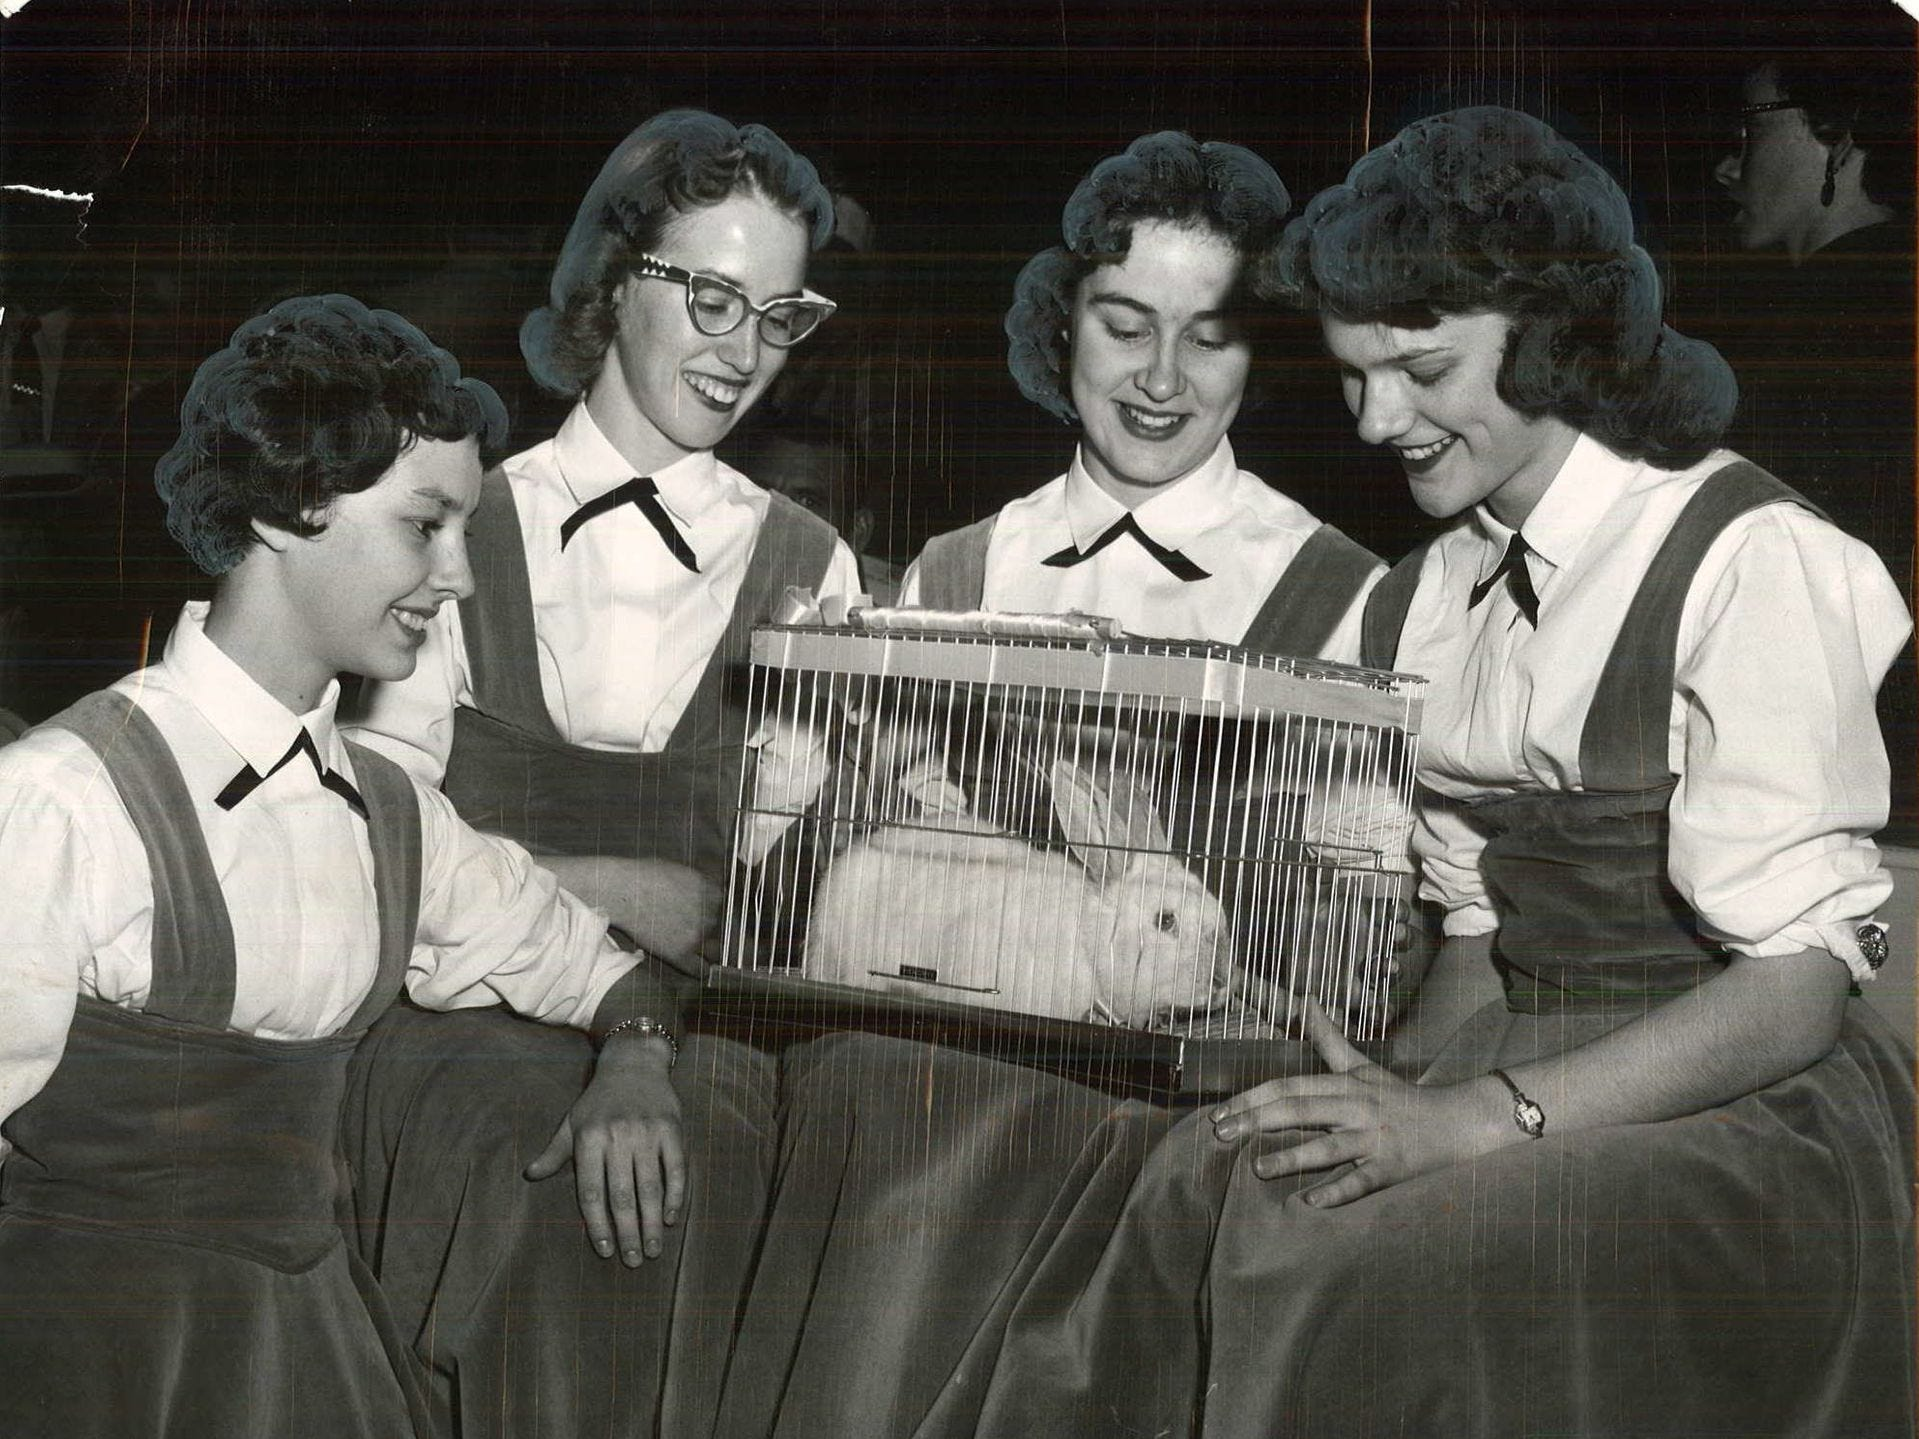 1956: Oakland cheerleaders, from left, Judy Spencer, Ann Perley, Emilie Gardner and Norma Renaud brought a rabbit named Lucky to a tournament game. Register file photo